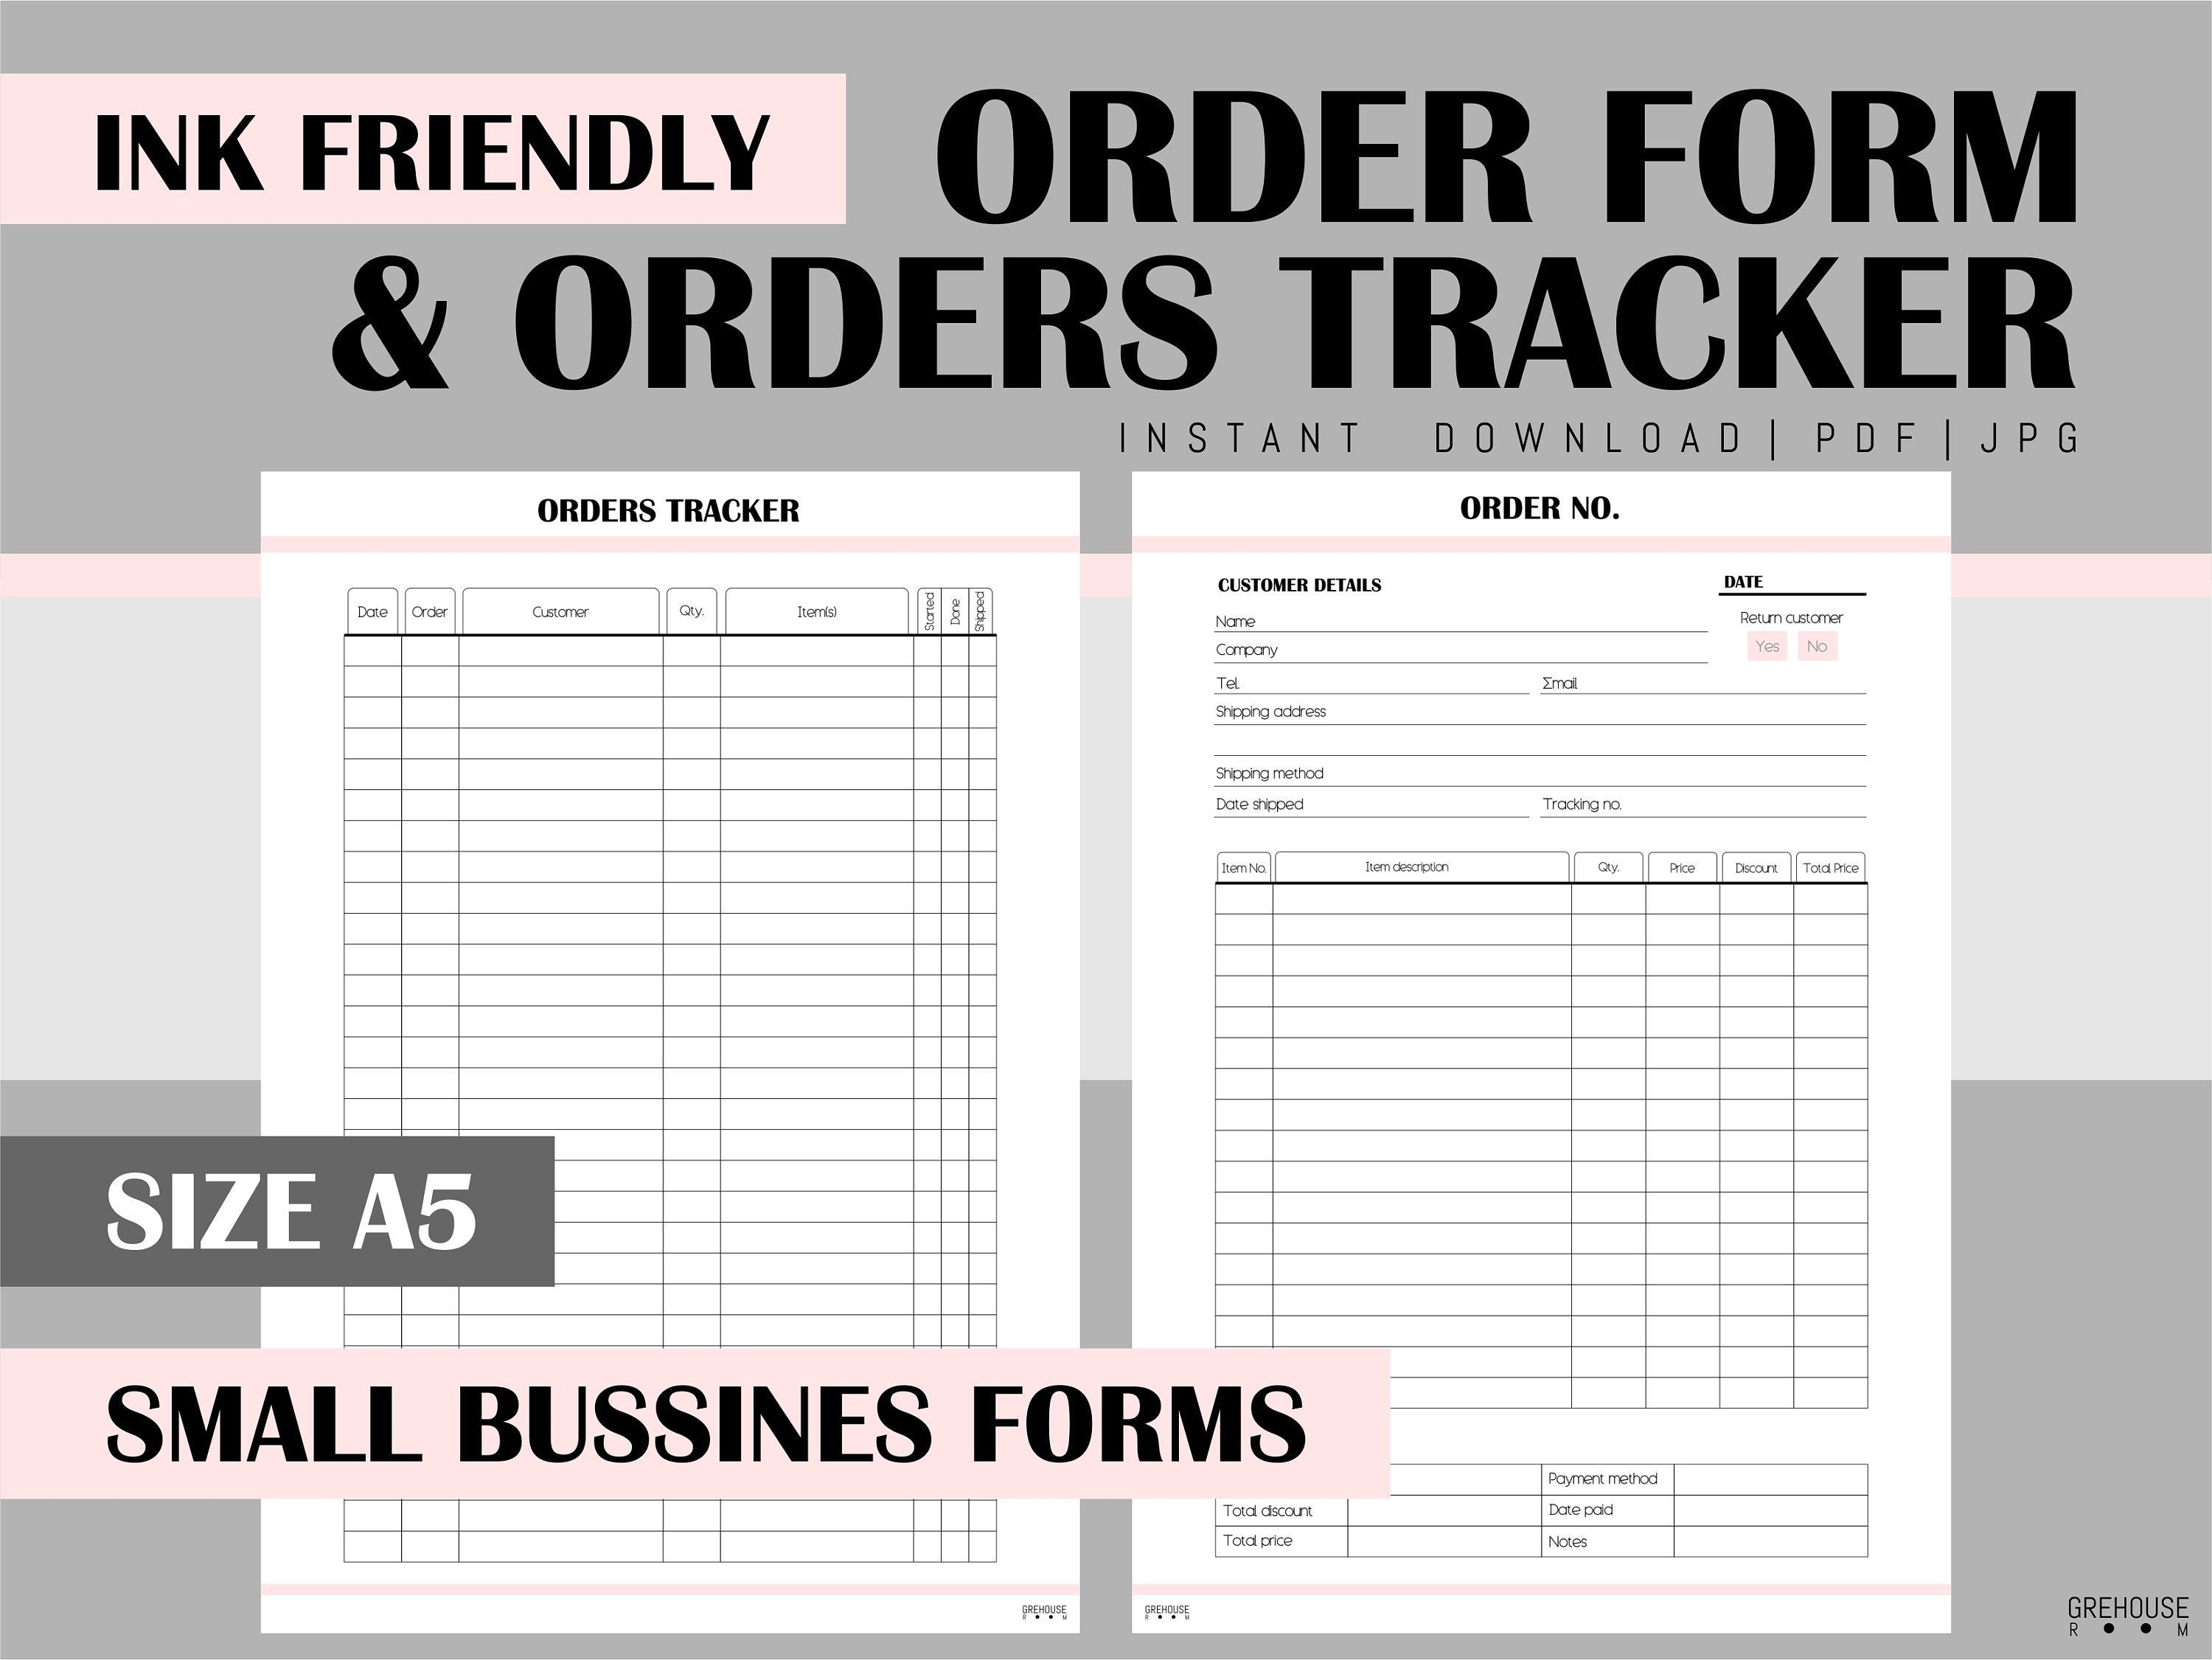 Order Form Template Order Tracker Printable Filofax A5 Planner Etsy Planner Inserts Refillable Planner Order Form Template